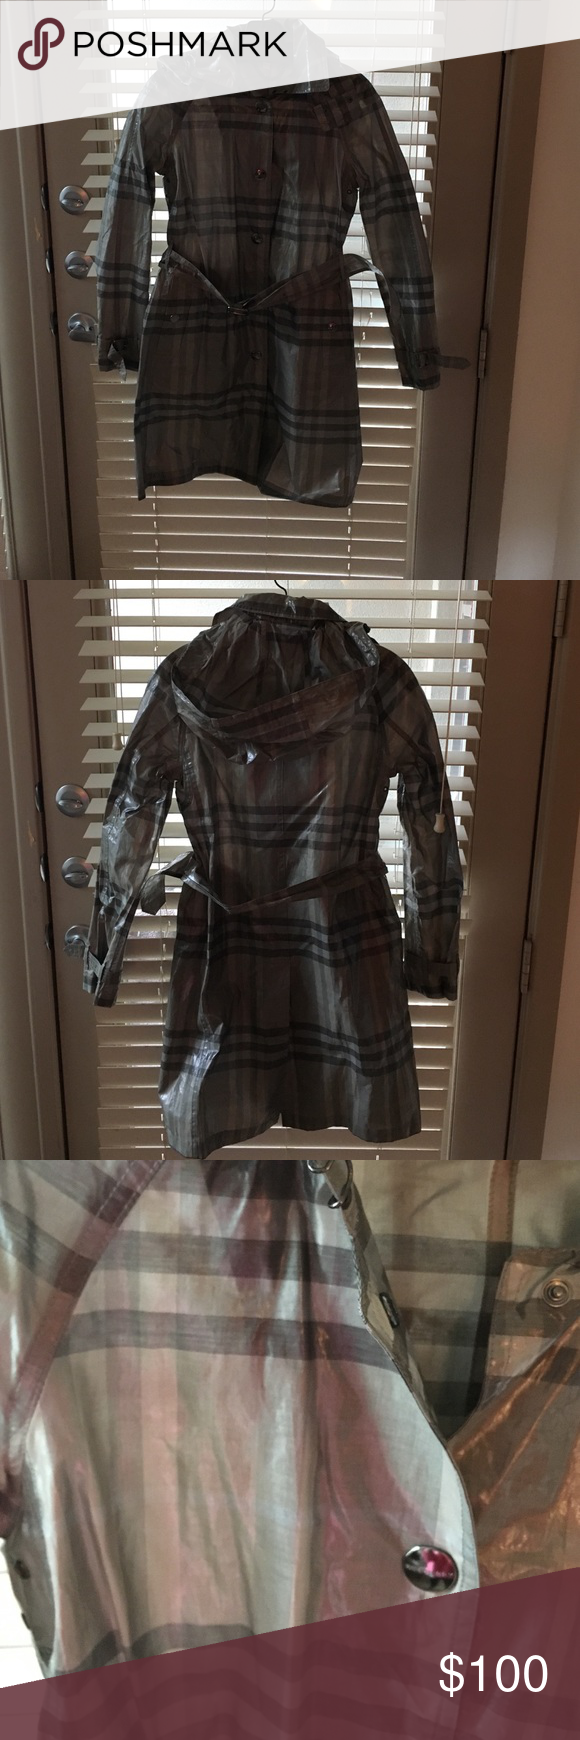 Authentic Burberry rain jacket!! Gray! Size 2 Rain jacket 74% cotton and 36% silk. Gary and rain proof size 2. Worn twice!! Burberry Jackets & Coats Utility Jackets